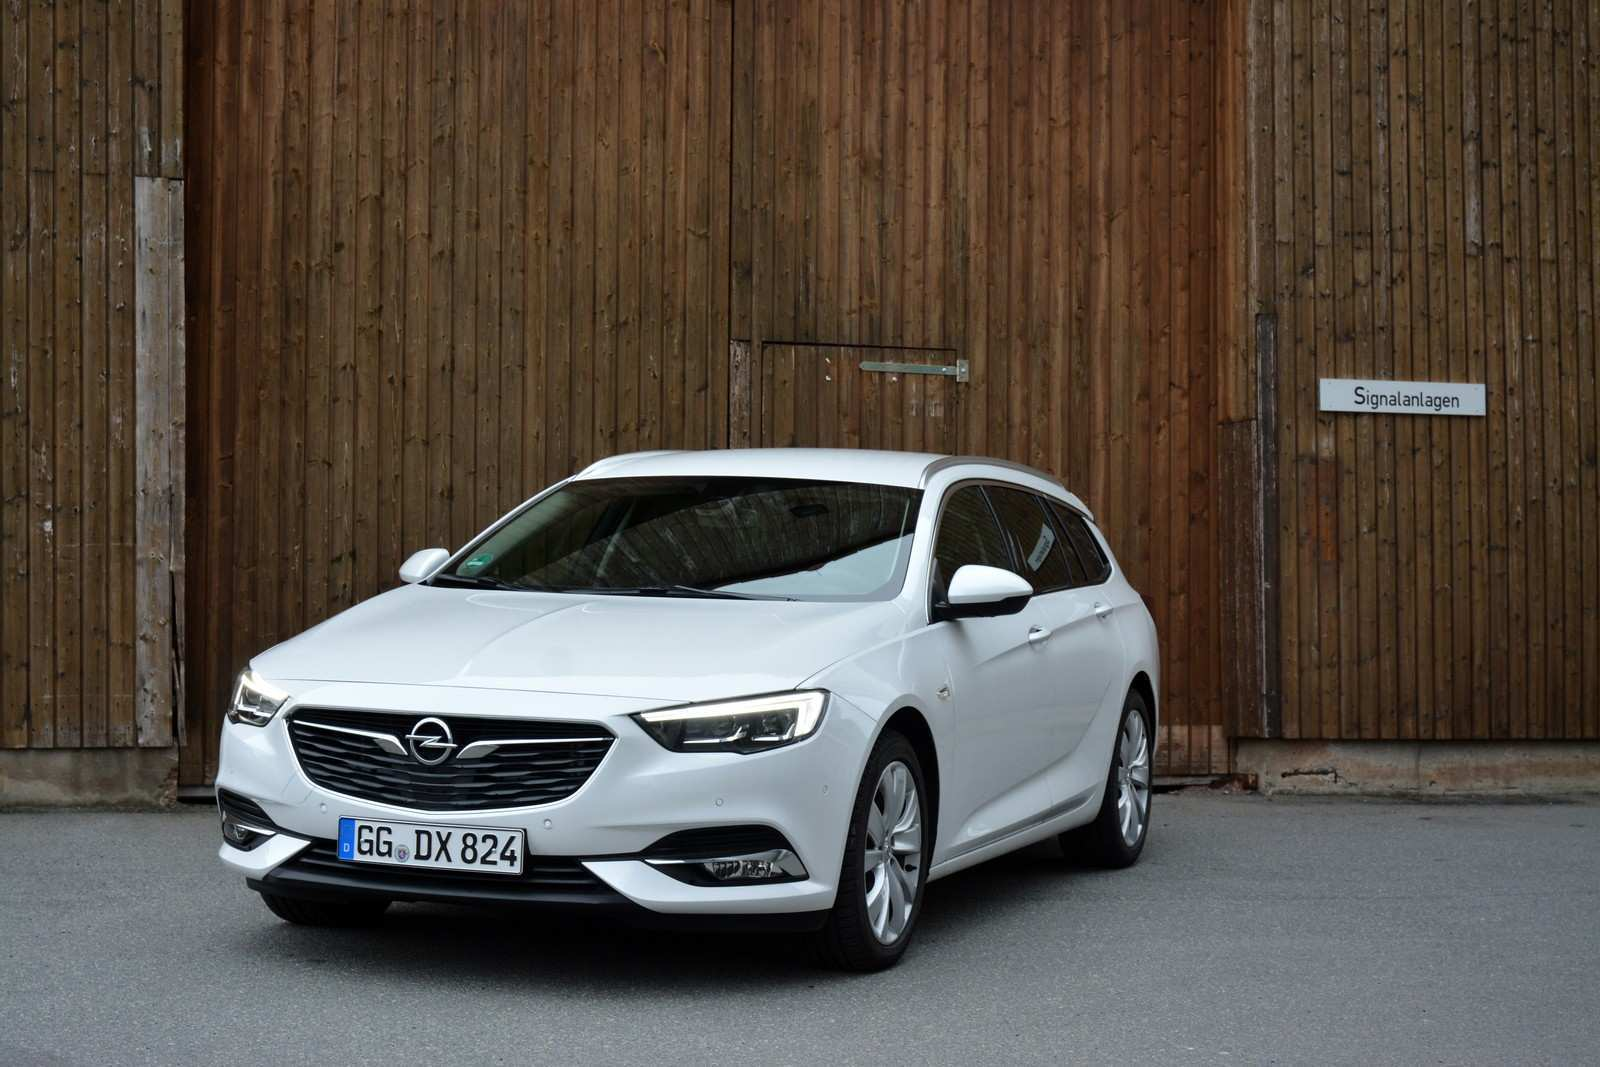 85 The Best 2019 Opel Insignia History